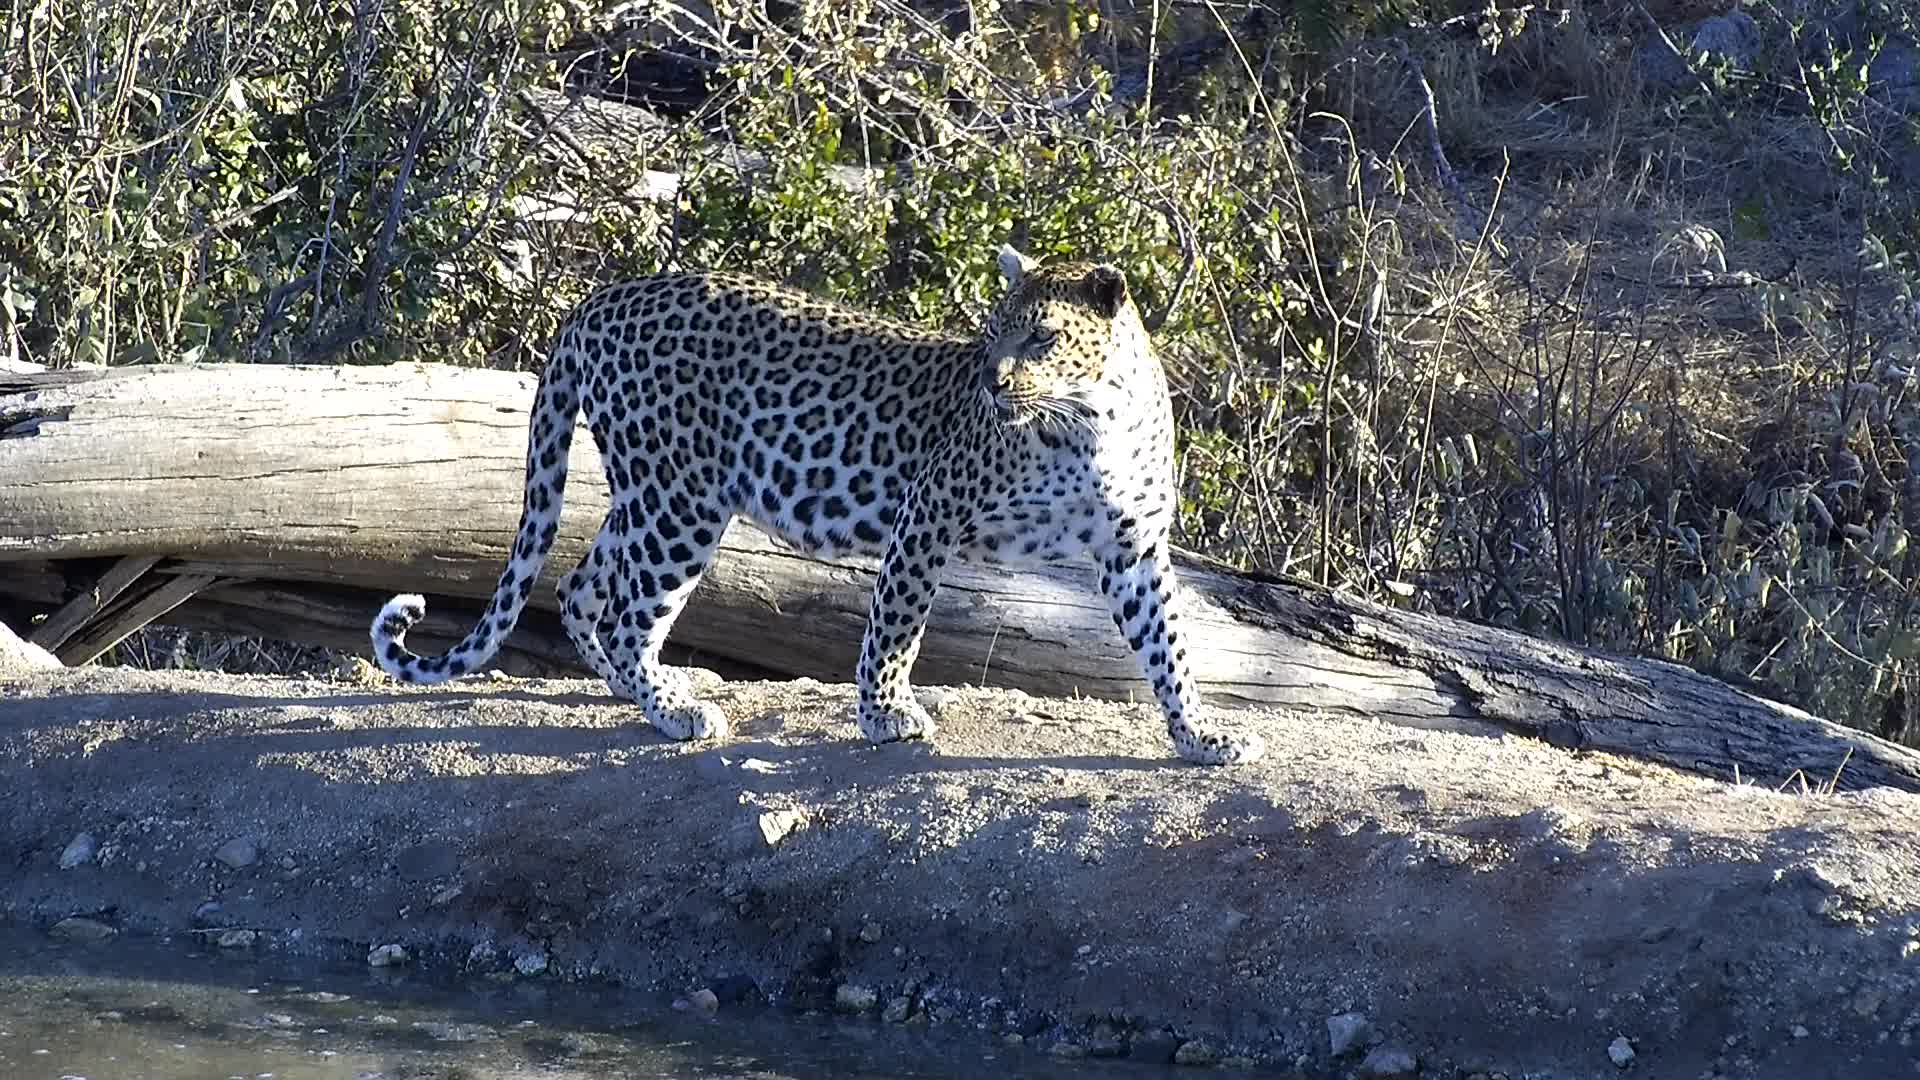 VIDEO: Leopard at the Waterhole for a drink